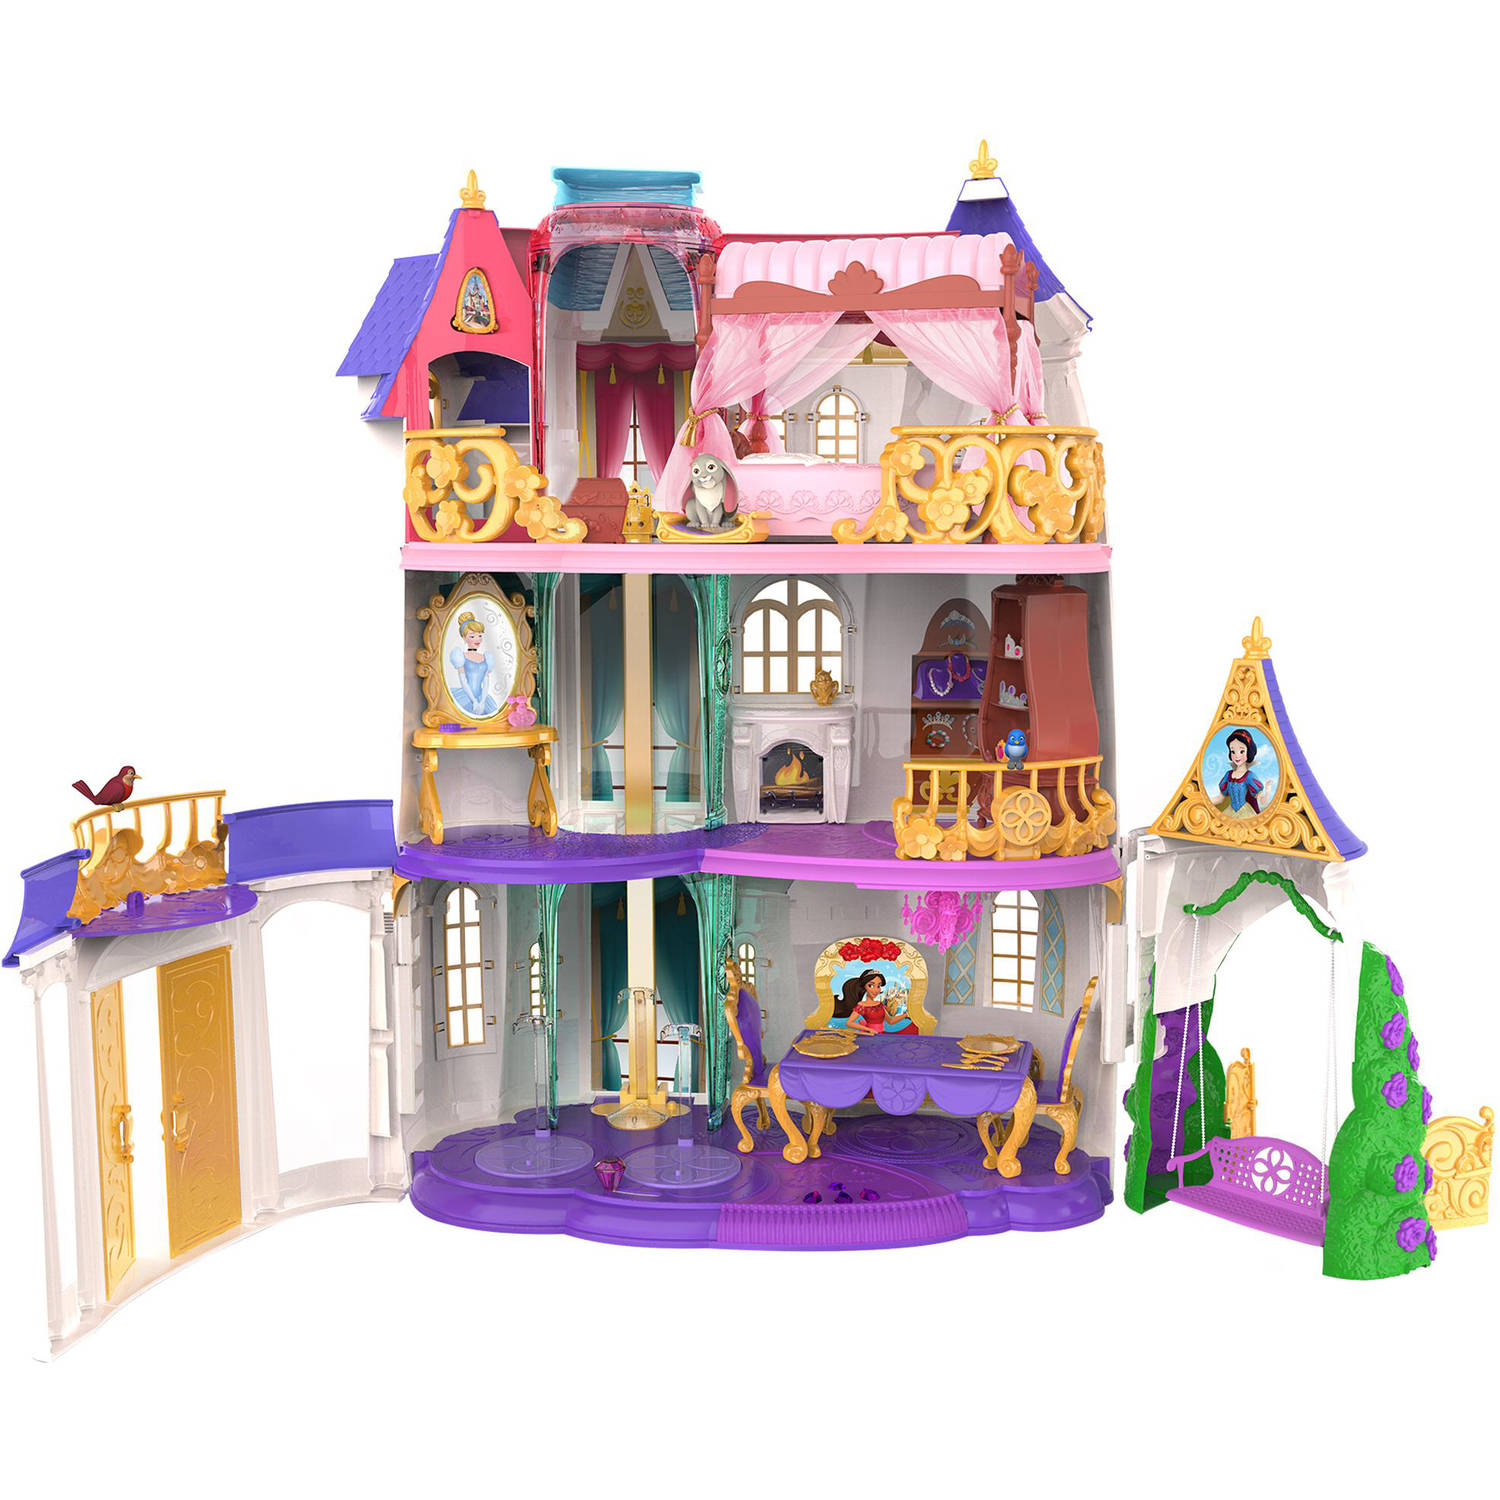 Sofia the First Enchancian Princess Play Castle